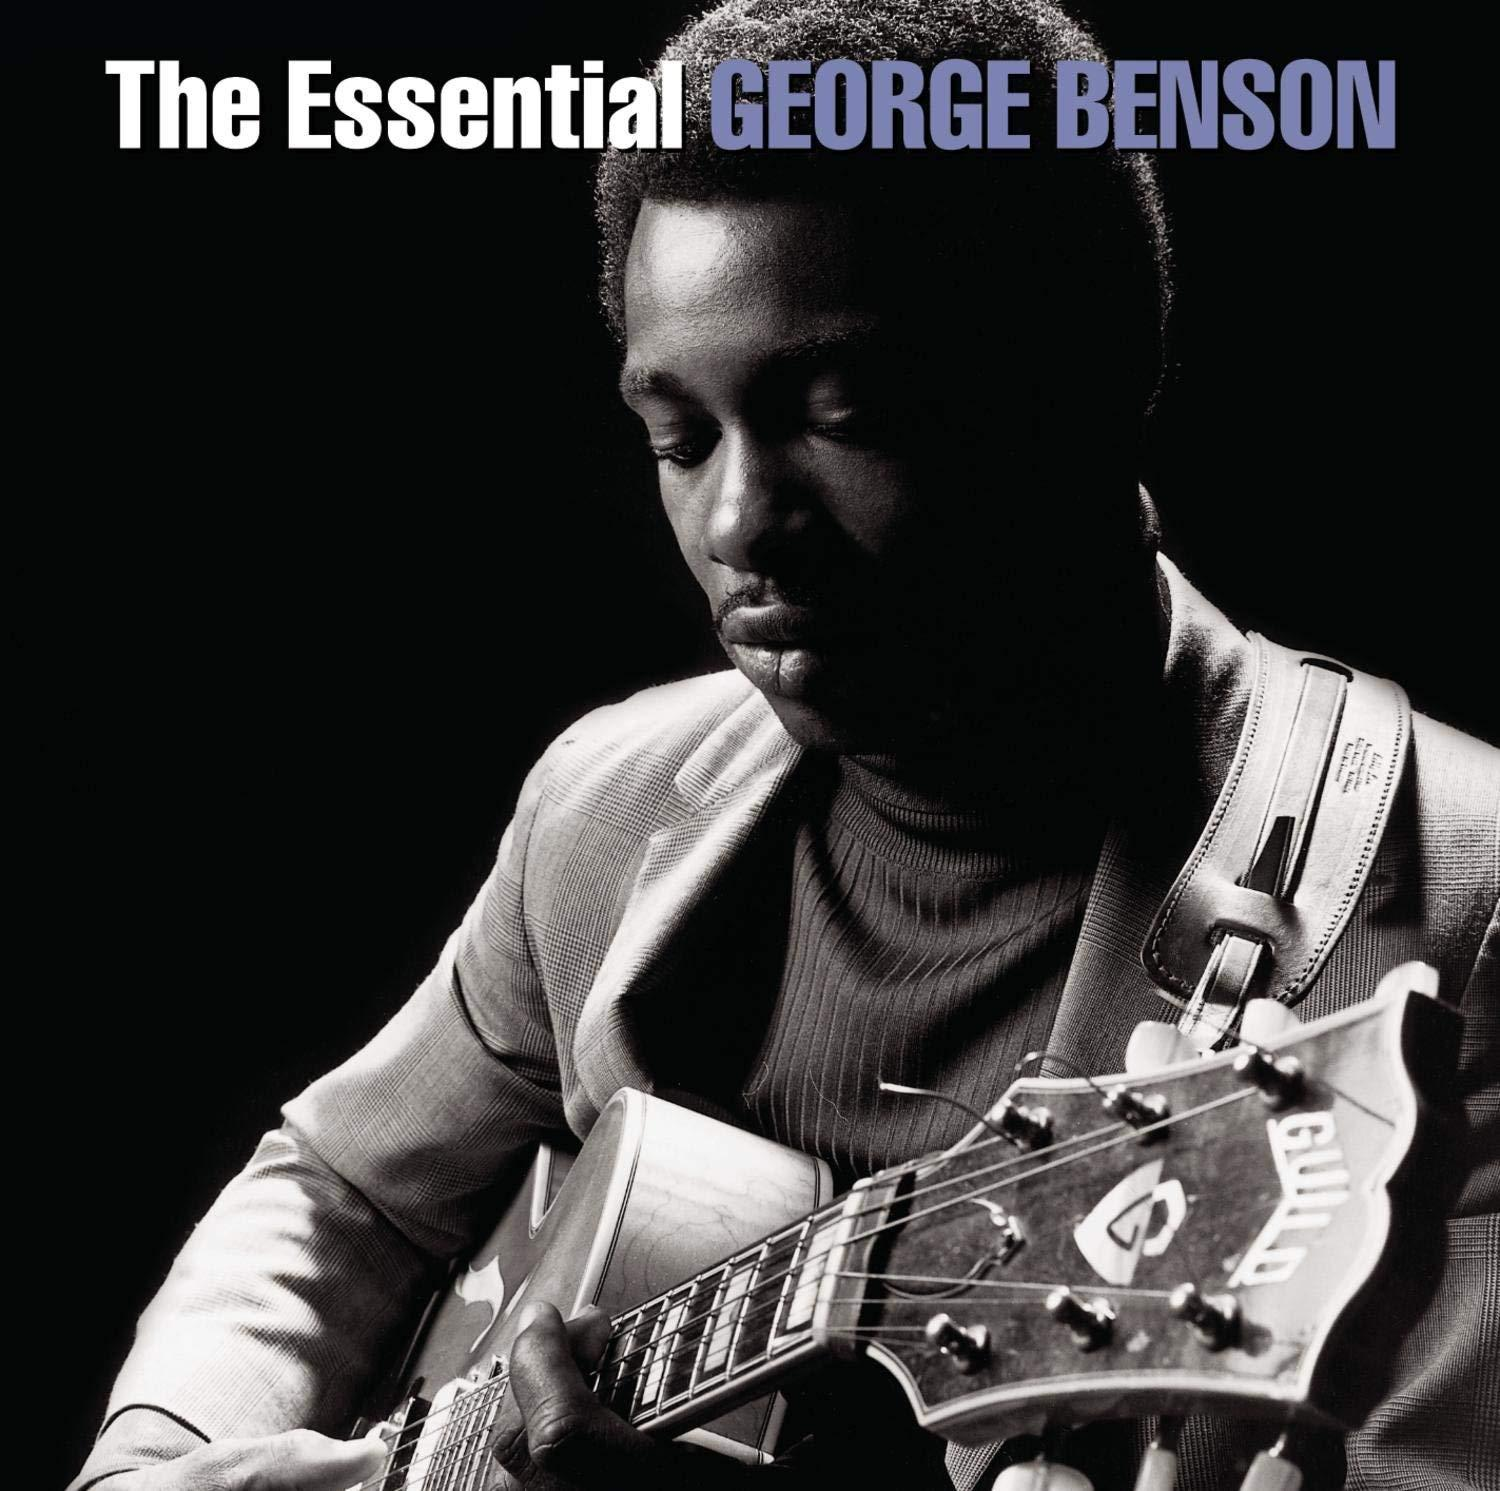 Buy Sell Cheapest Cd George Benson Best Quality Product Deals Gewa Roy Saxophone Alto As202 The Essential 2cd